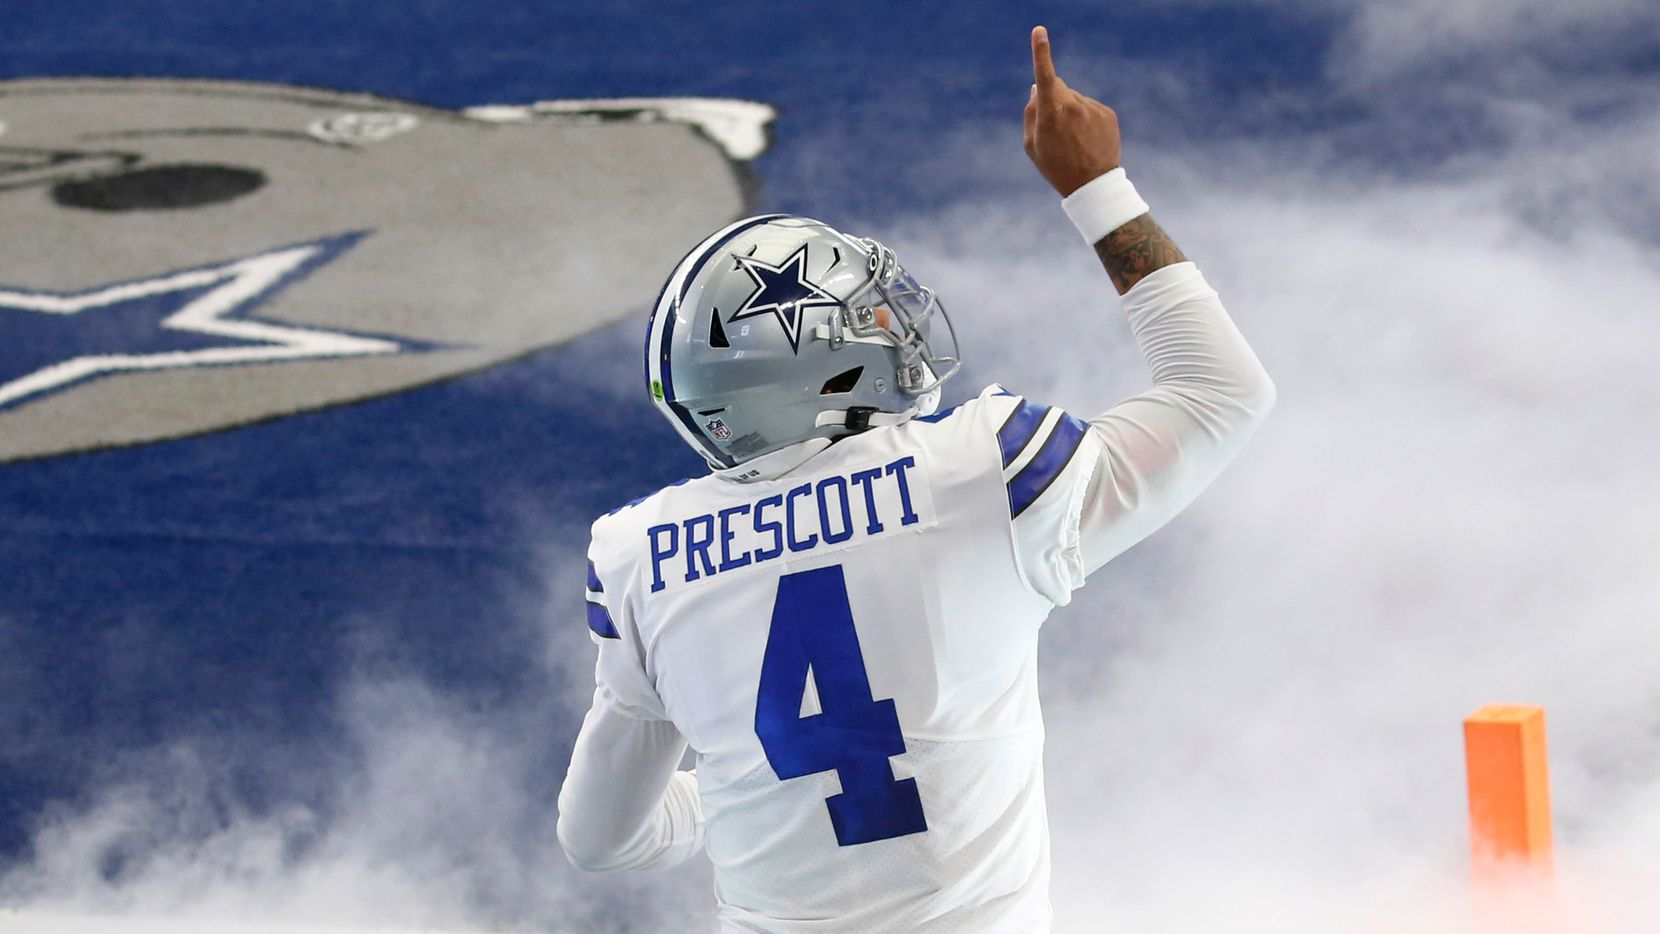 Dallas Cowboys quarterback Dak Prescott (4) points up as he takes the field during introductions before a game against the Atlanta Falcons for the home opener at AT&T Stadium in Arlington, Texas on Sunday, September 20, 2020.